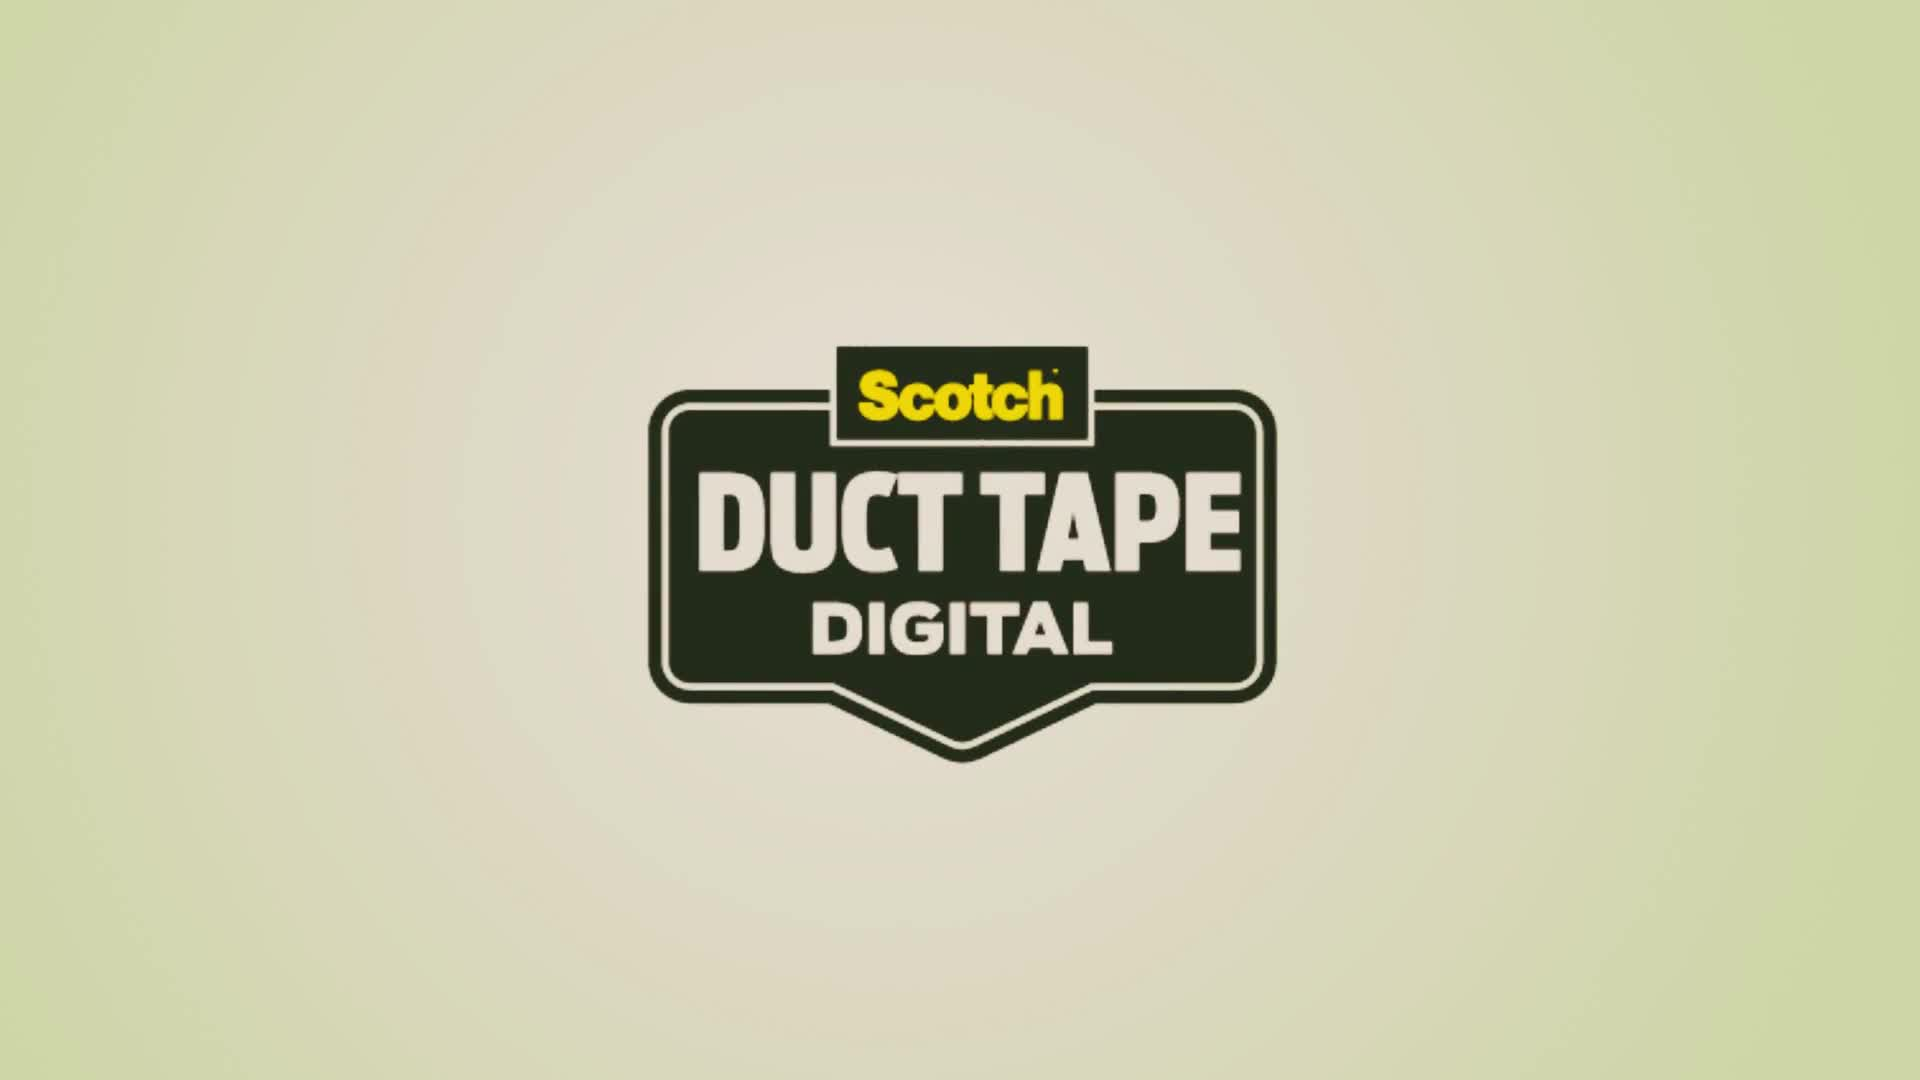 scotch-tape-duct-tape-digital-600-21120.jpg